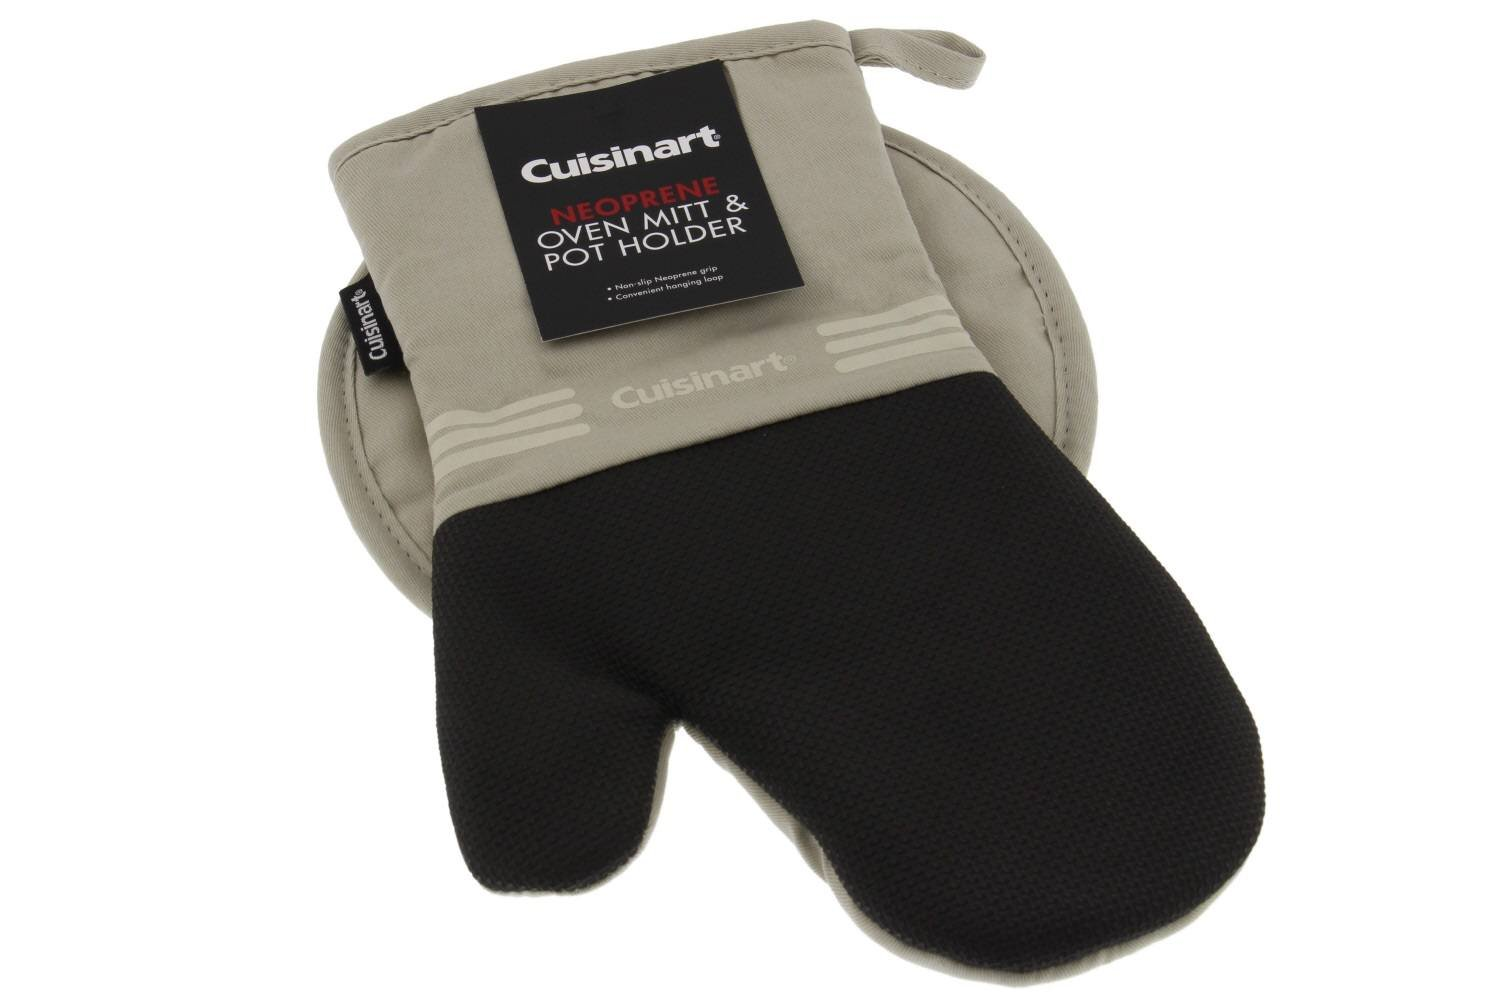 2pk Cuisinart Mini Oven Mitts w//Neoprene for Easy Gripping Heat Resistant up to 500 degrees F Tan